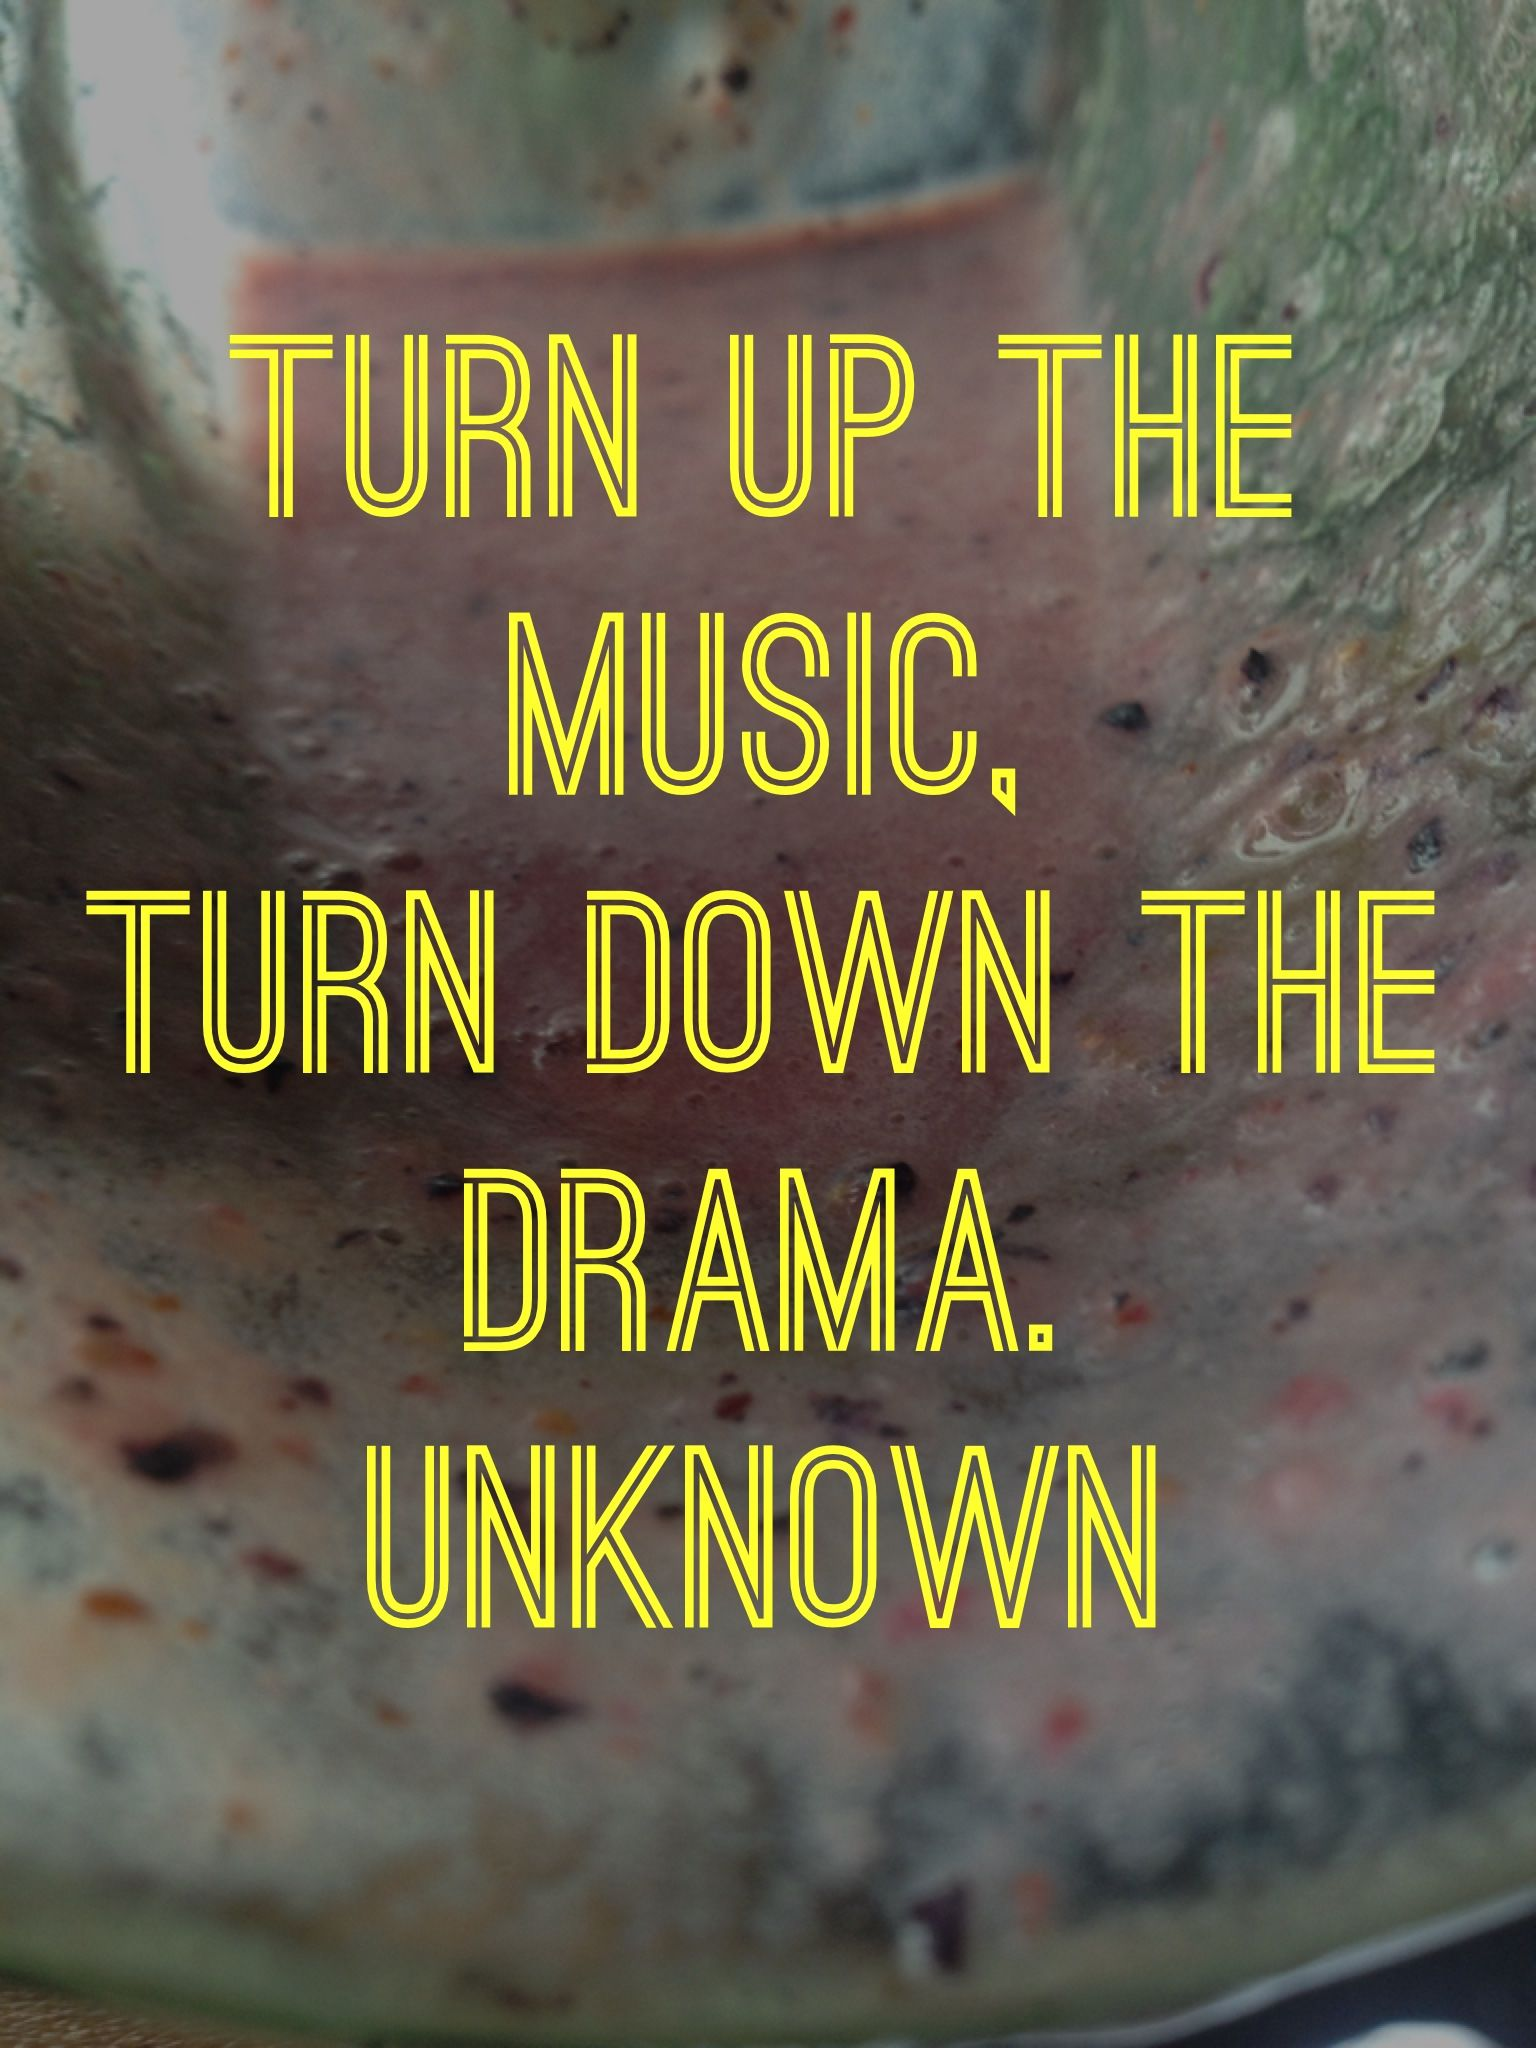 Inspirational Quotes About Music And Life Music Quote Monday Drama  Music Inspirational Words  Pinterest